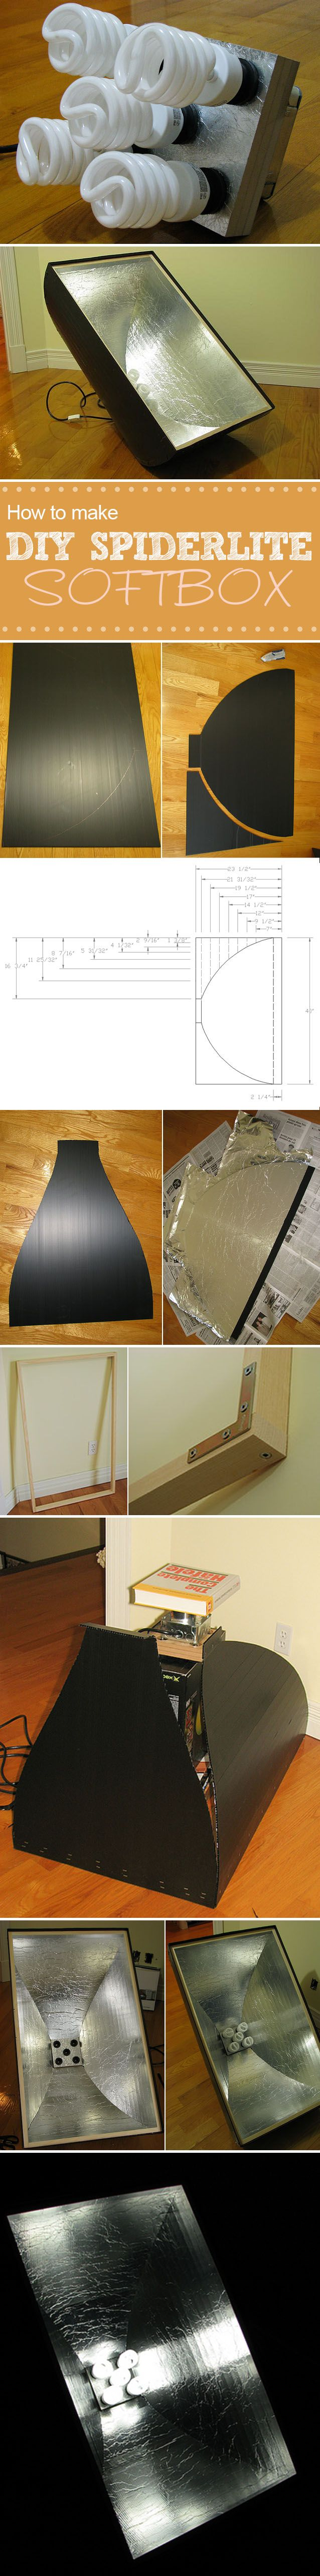 If you have problems with the natural lighting and don't have money for quality artificial lighting, maybe the solution for you could be this DIY Project - DIY Softbox Spiderlite.